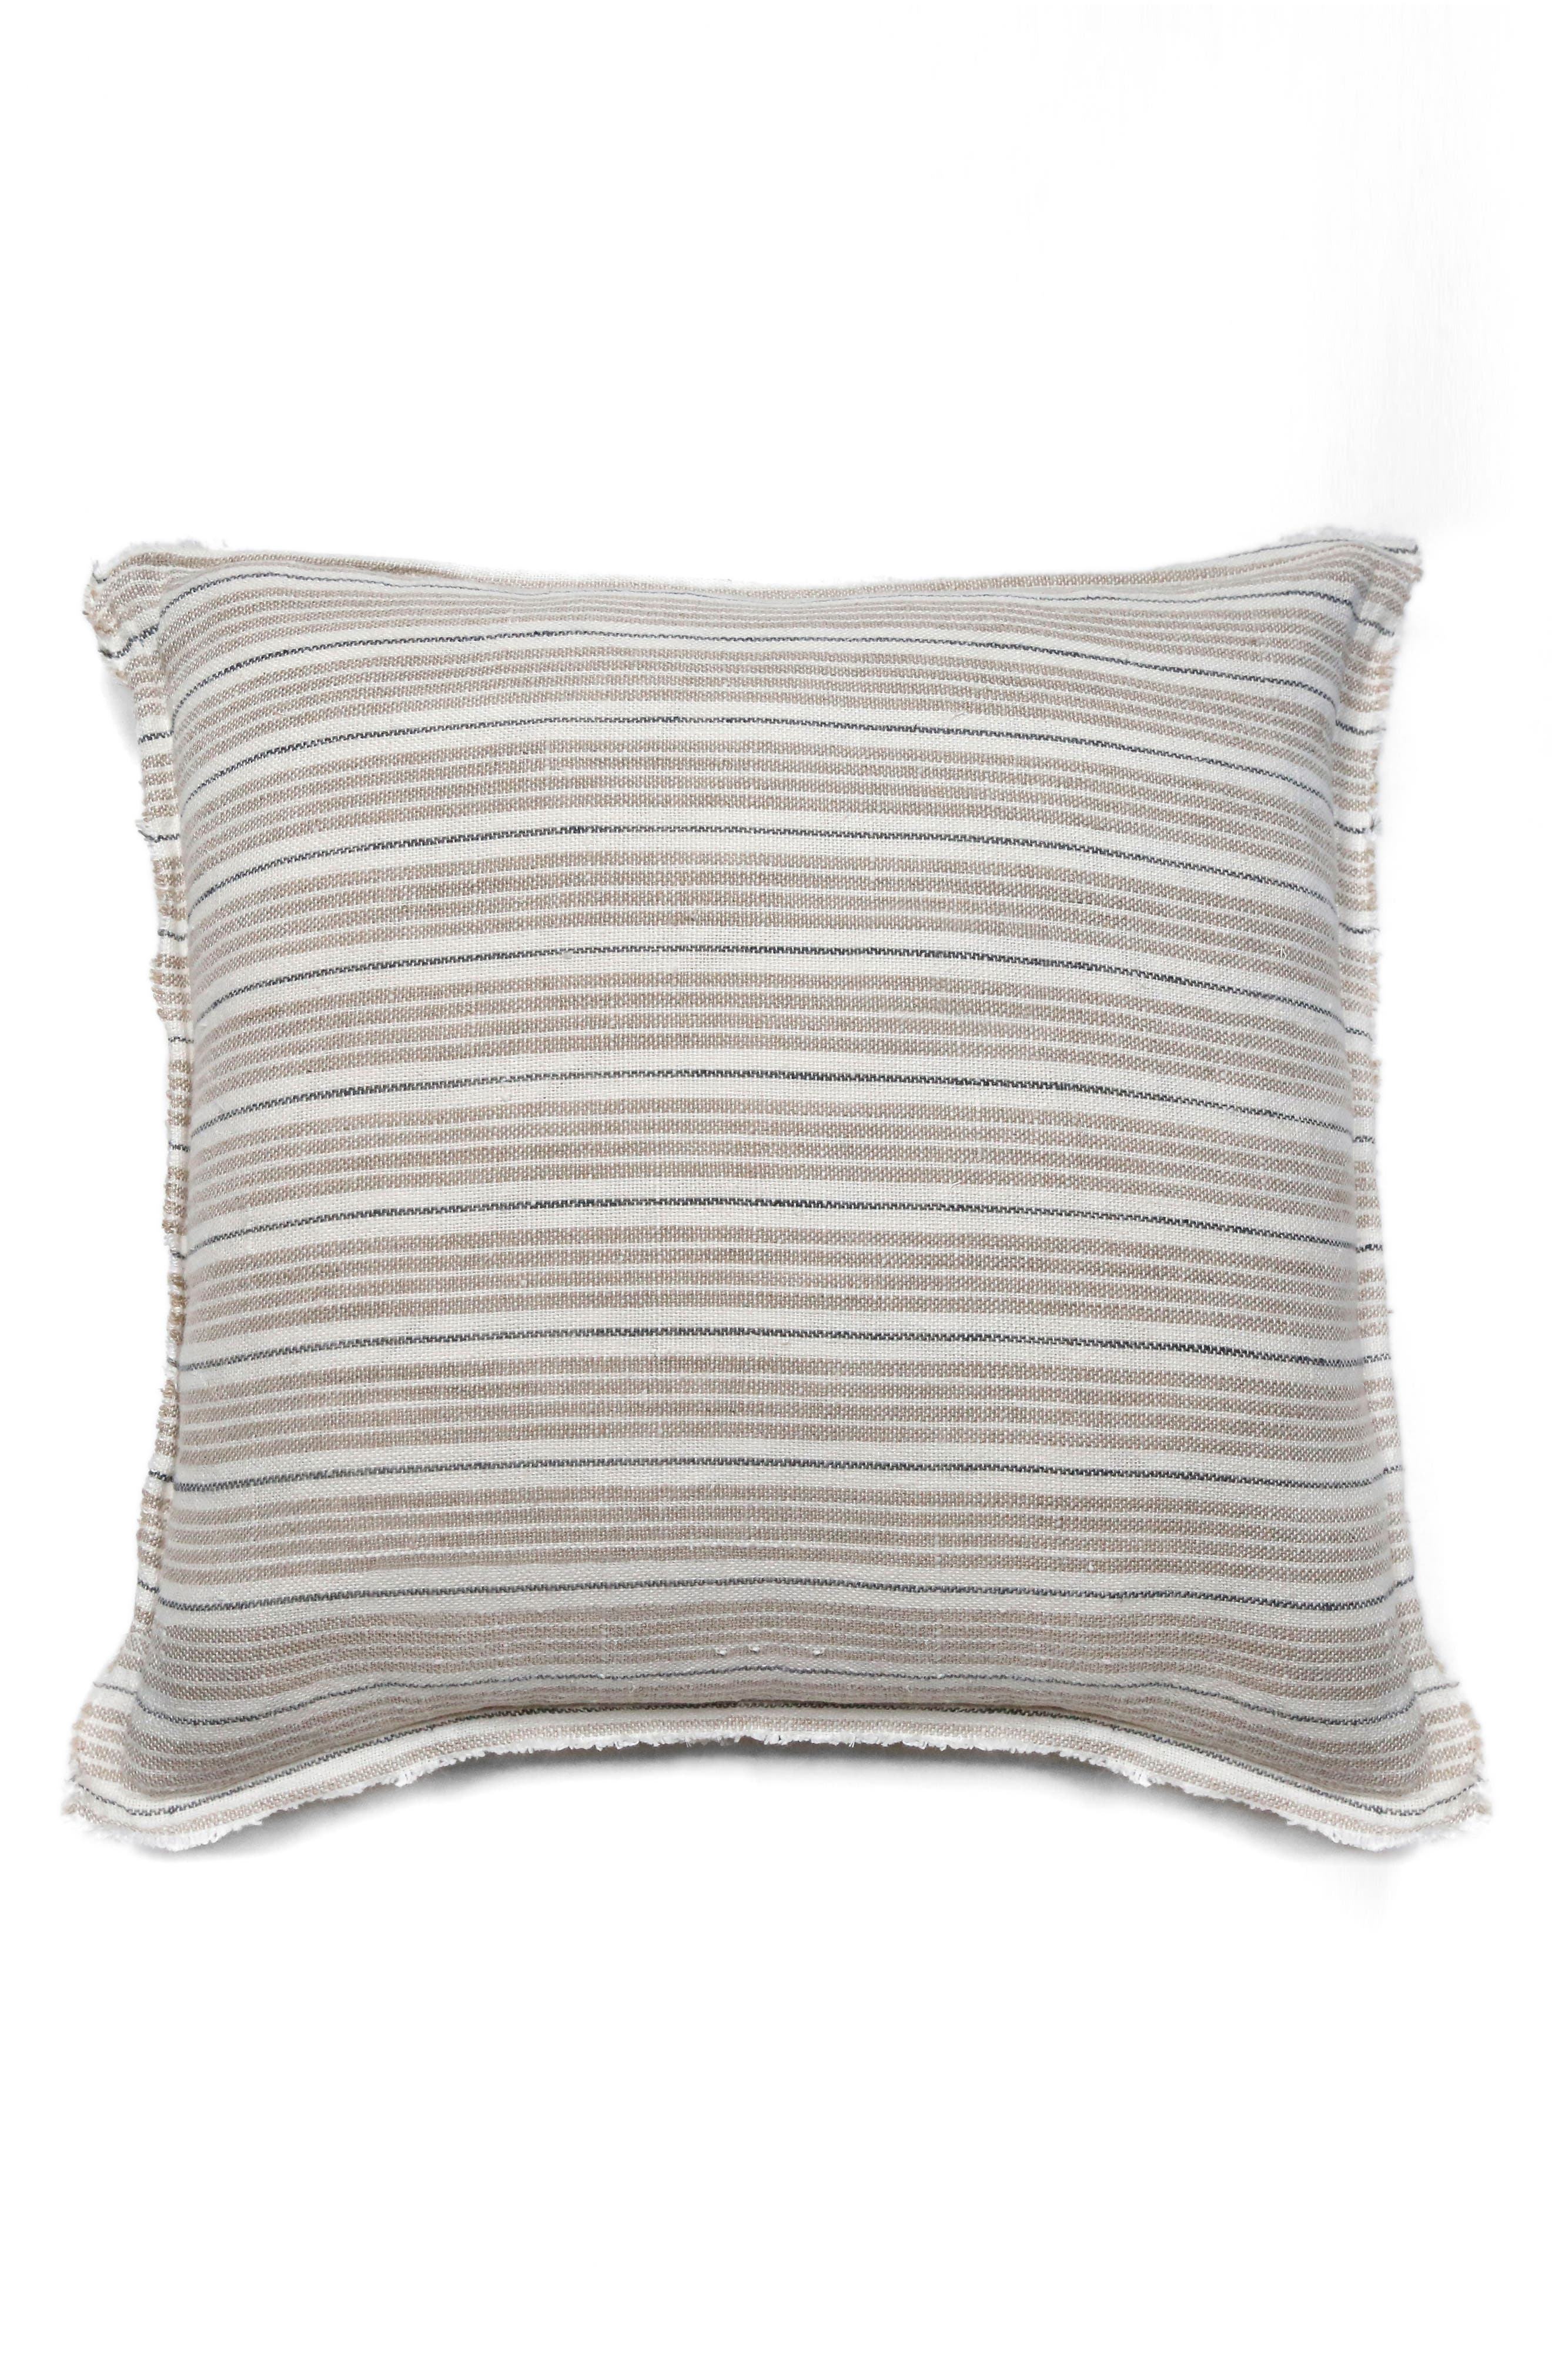 Main Image - Pom Pom at Home Newport Accent Pillow